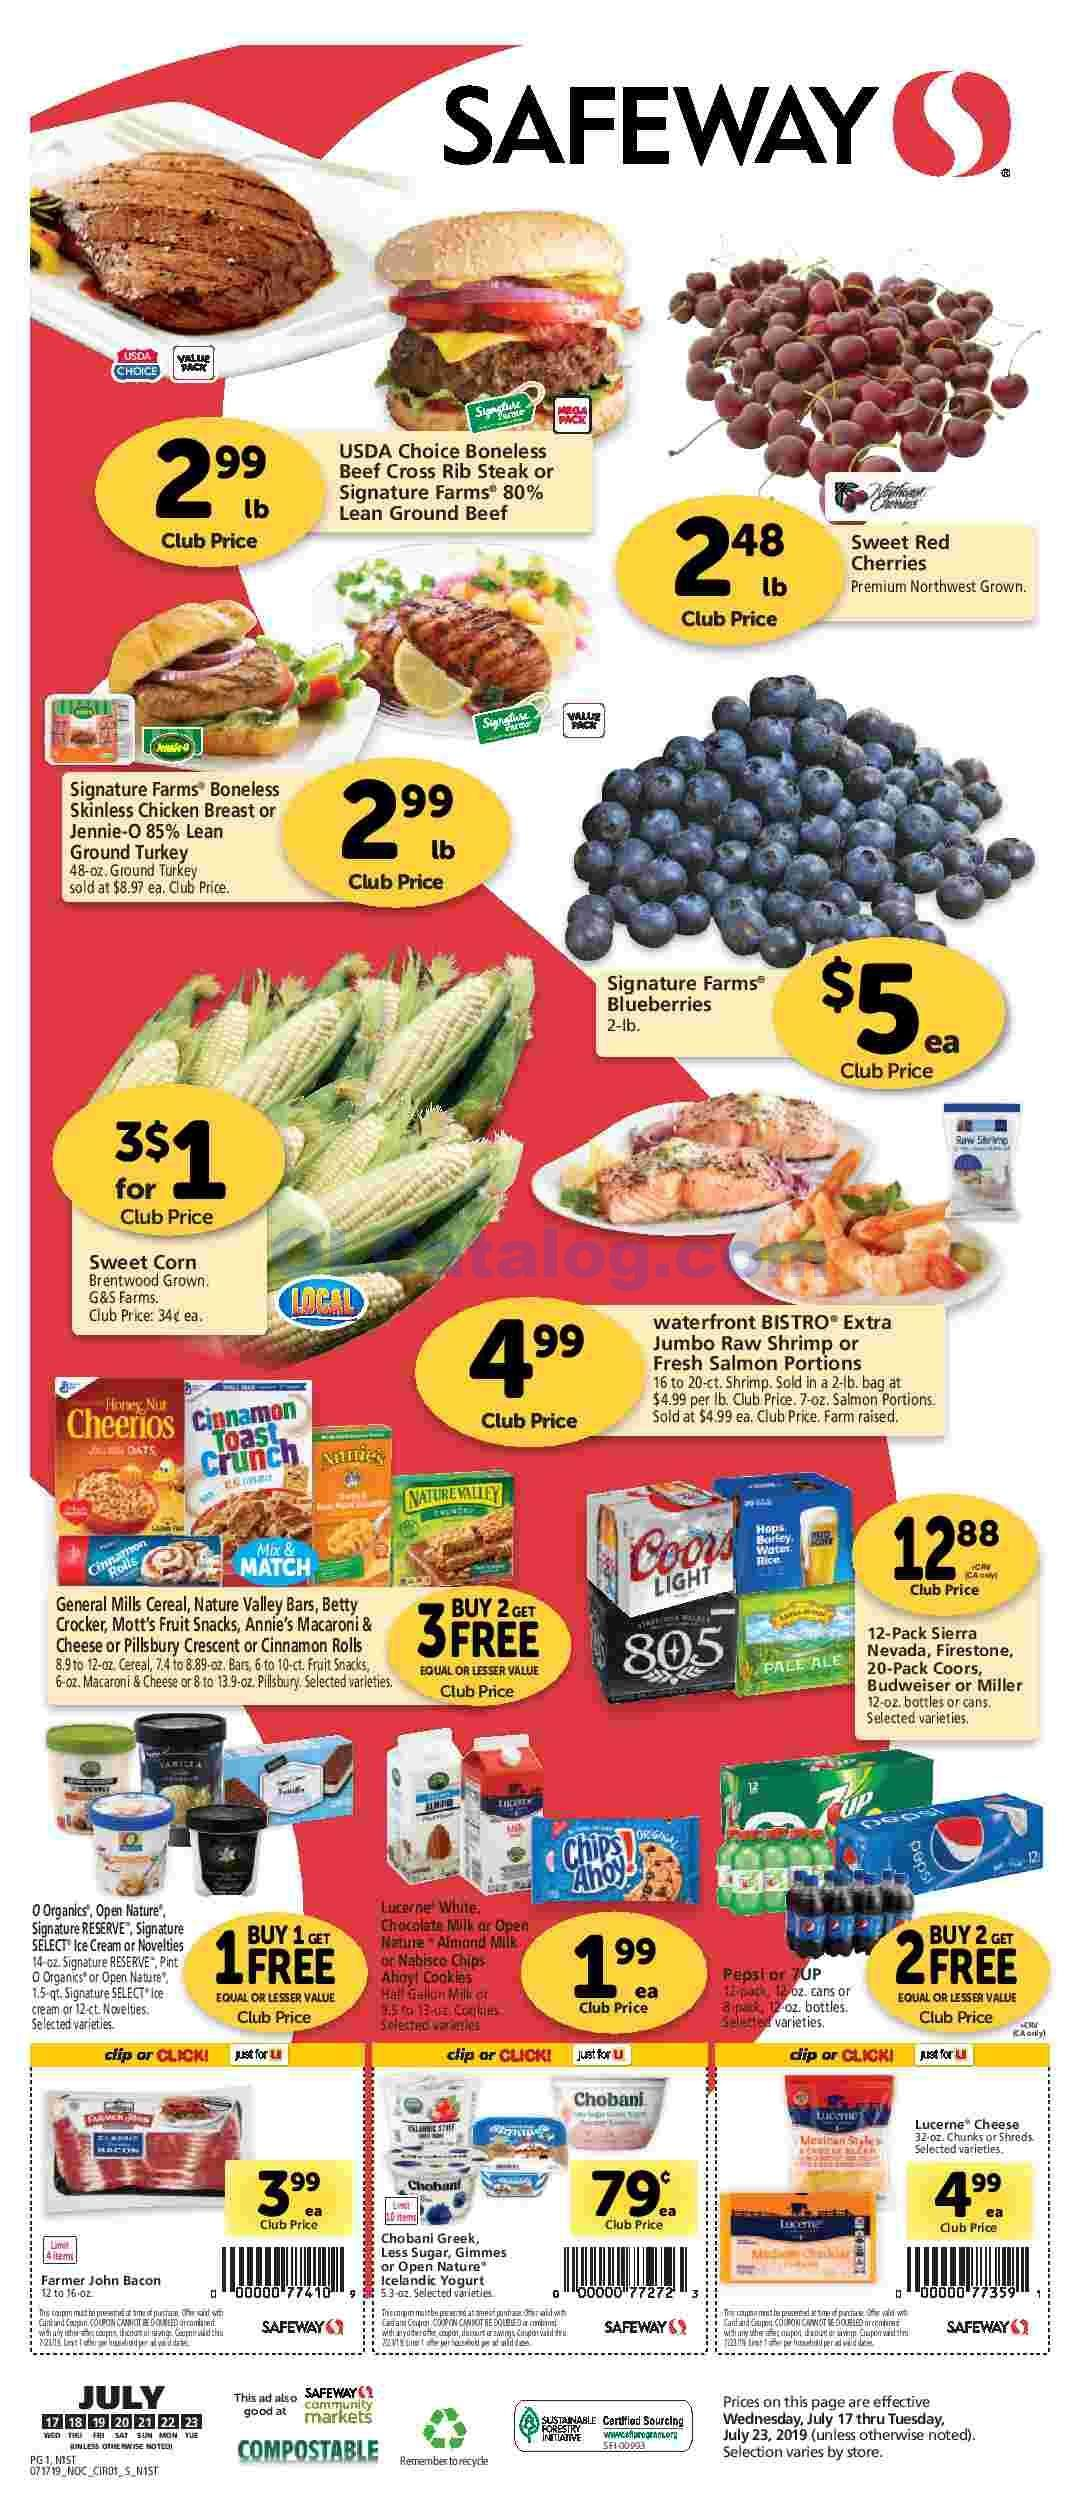 Safeway Weekly Ad 7/1/20 7/7/20 Sneak Peek Preview